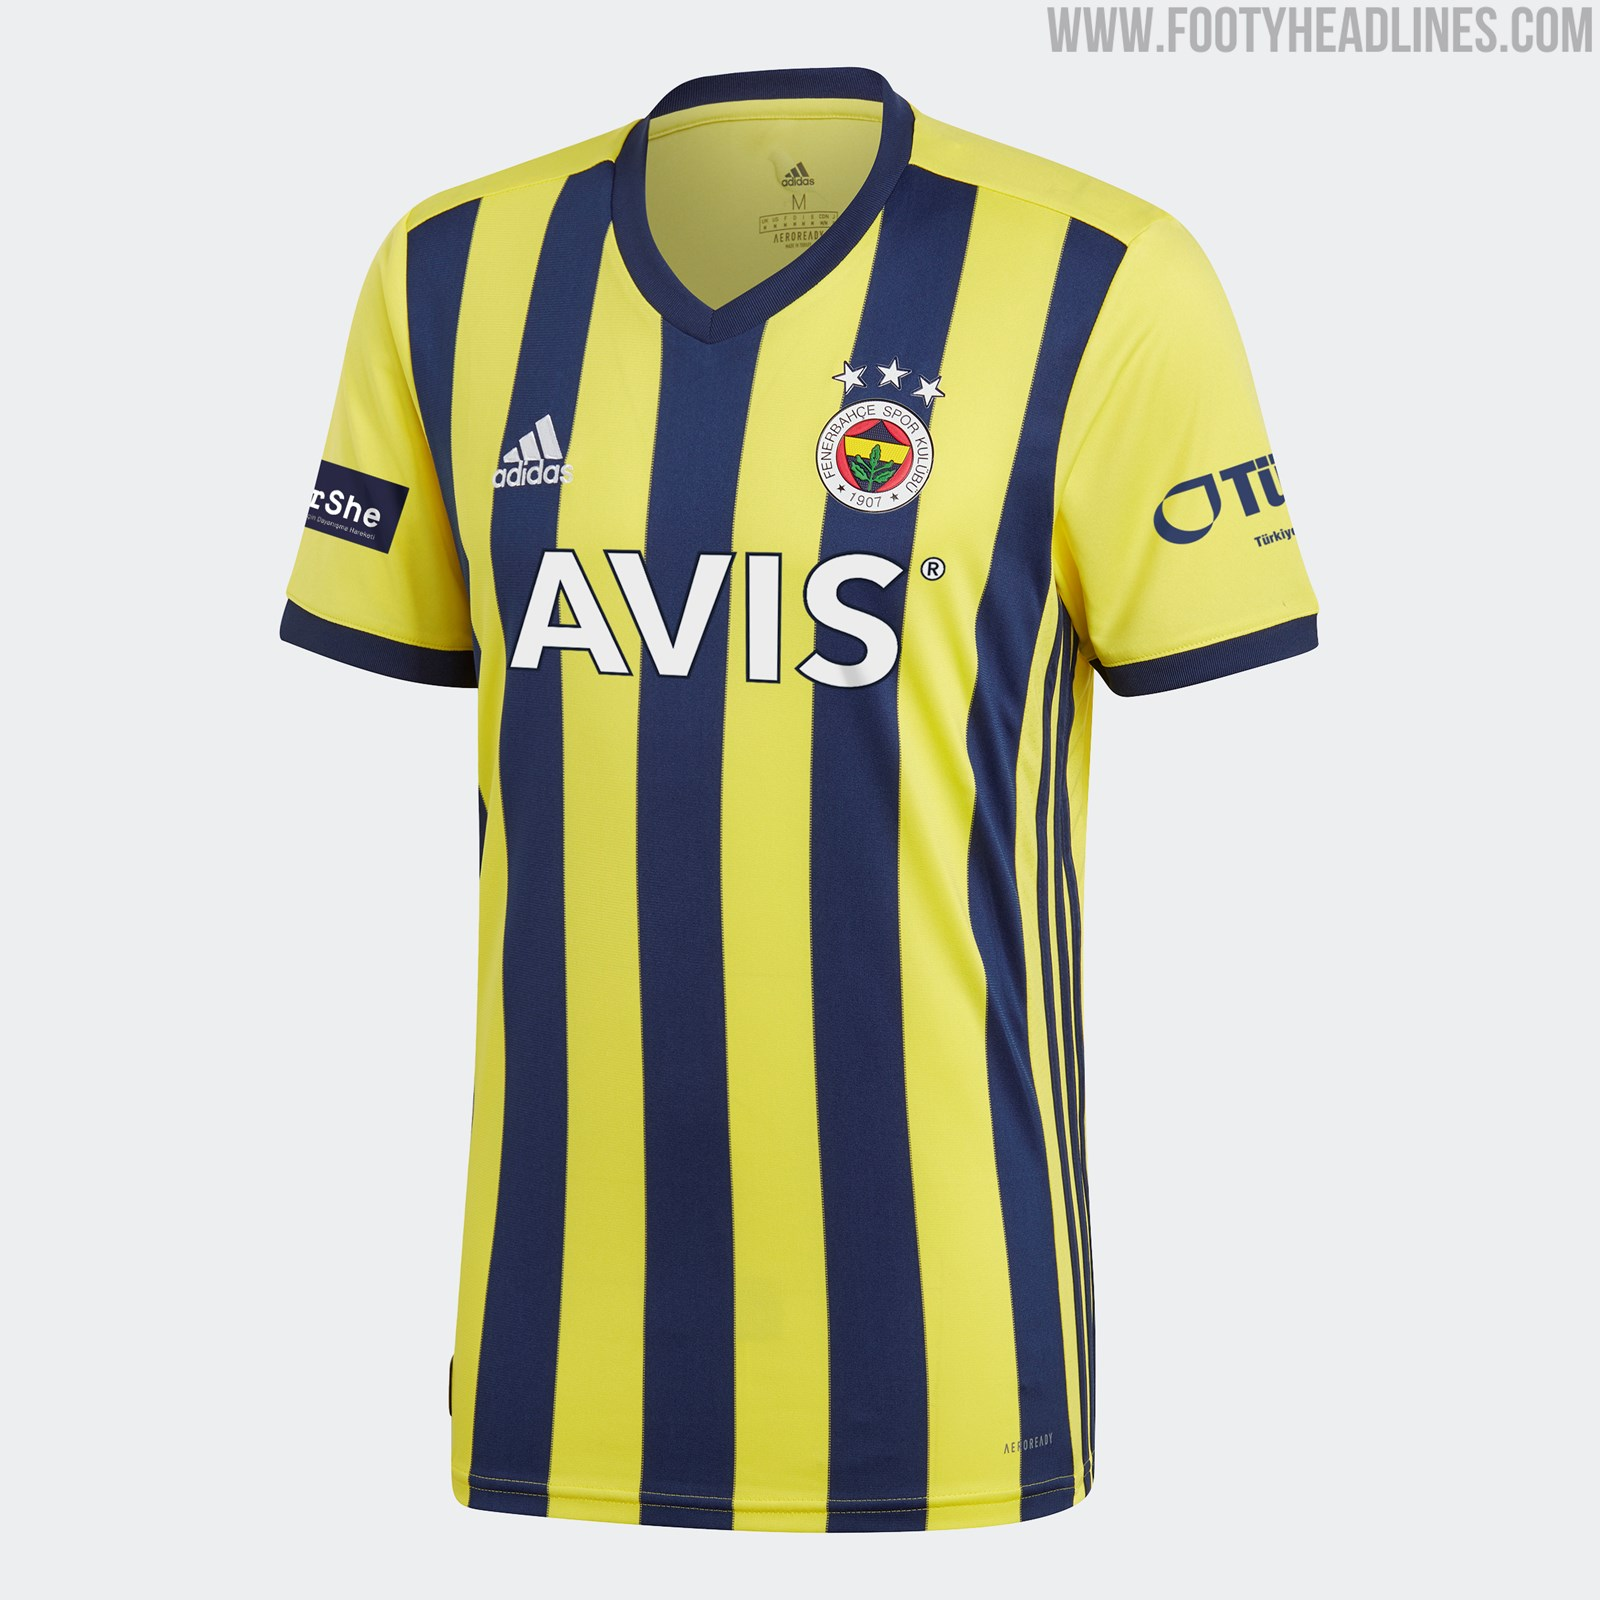 Fenerbahce 20-21 Home, Away & Third Kits Released - Footy ...